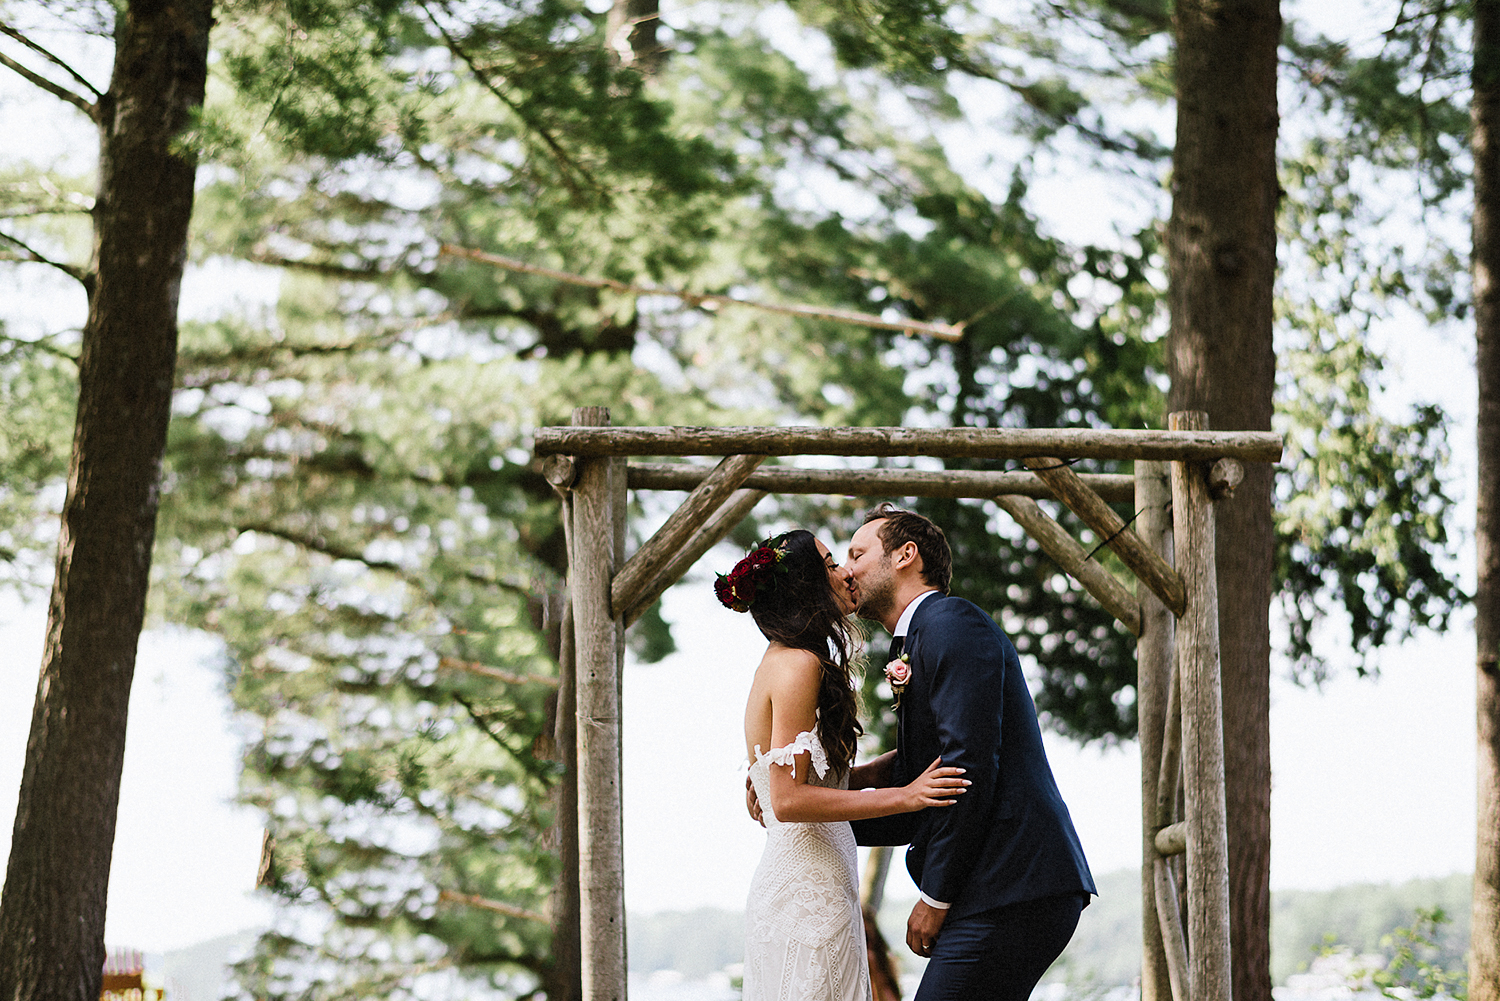 Muskoka-Cottage-Wedding-Photography-Photographer_Photojournalistic-Documentary-Wedding-Photography_Vintage-Bride-Forest-Wedding-Ceremony-Venue-Bride-Groom-First-Kiss.jpg